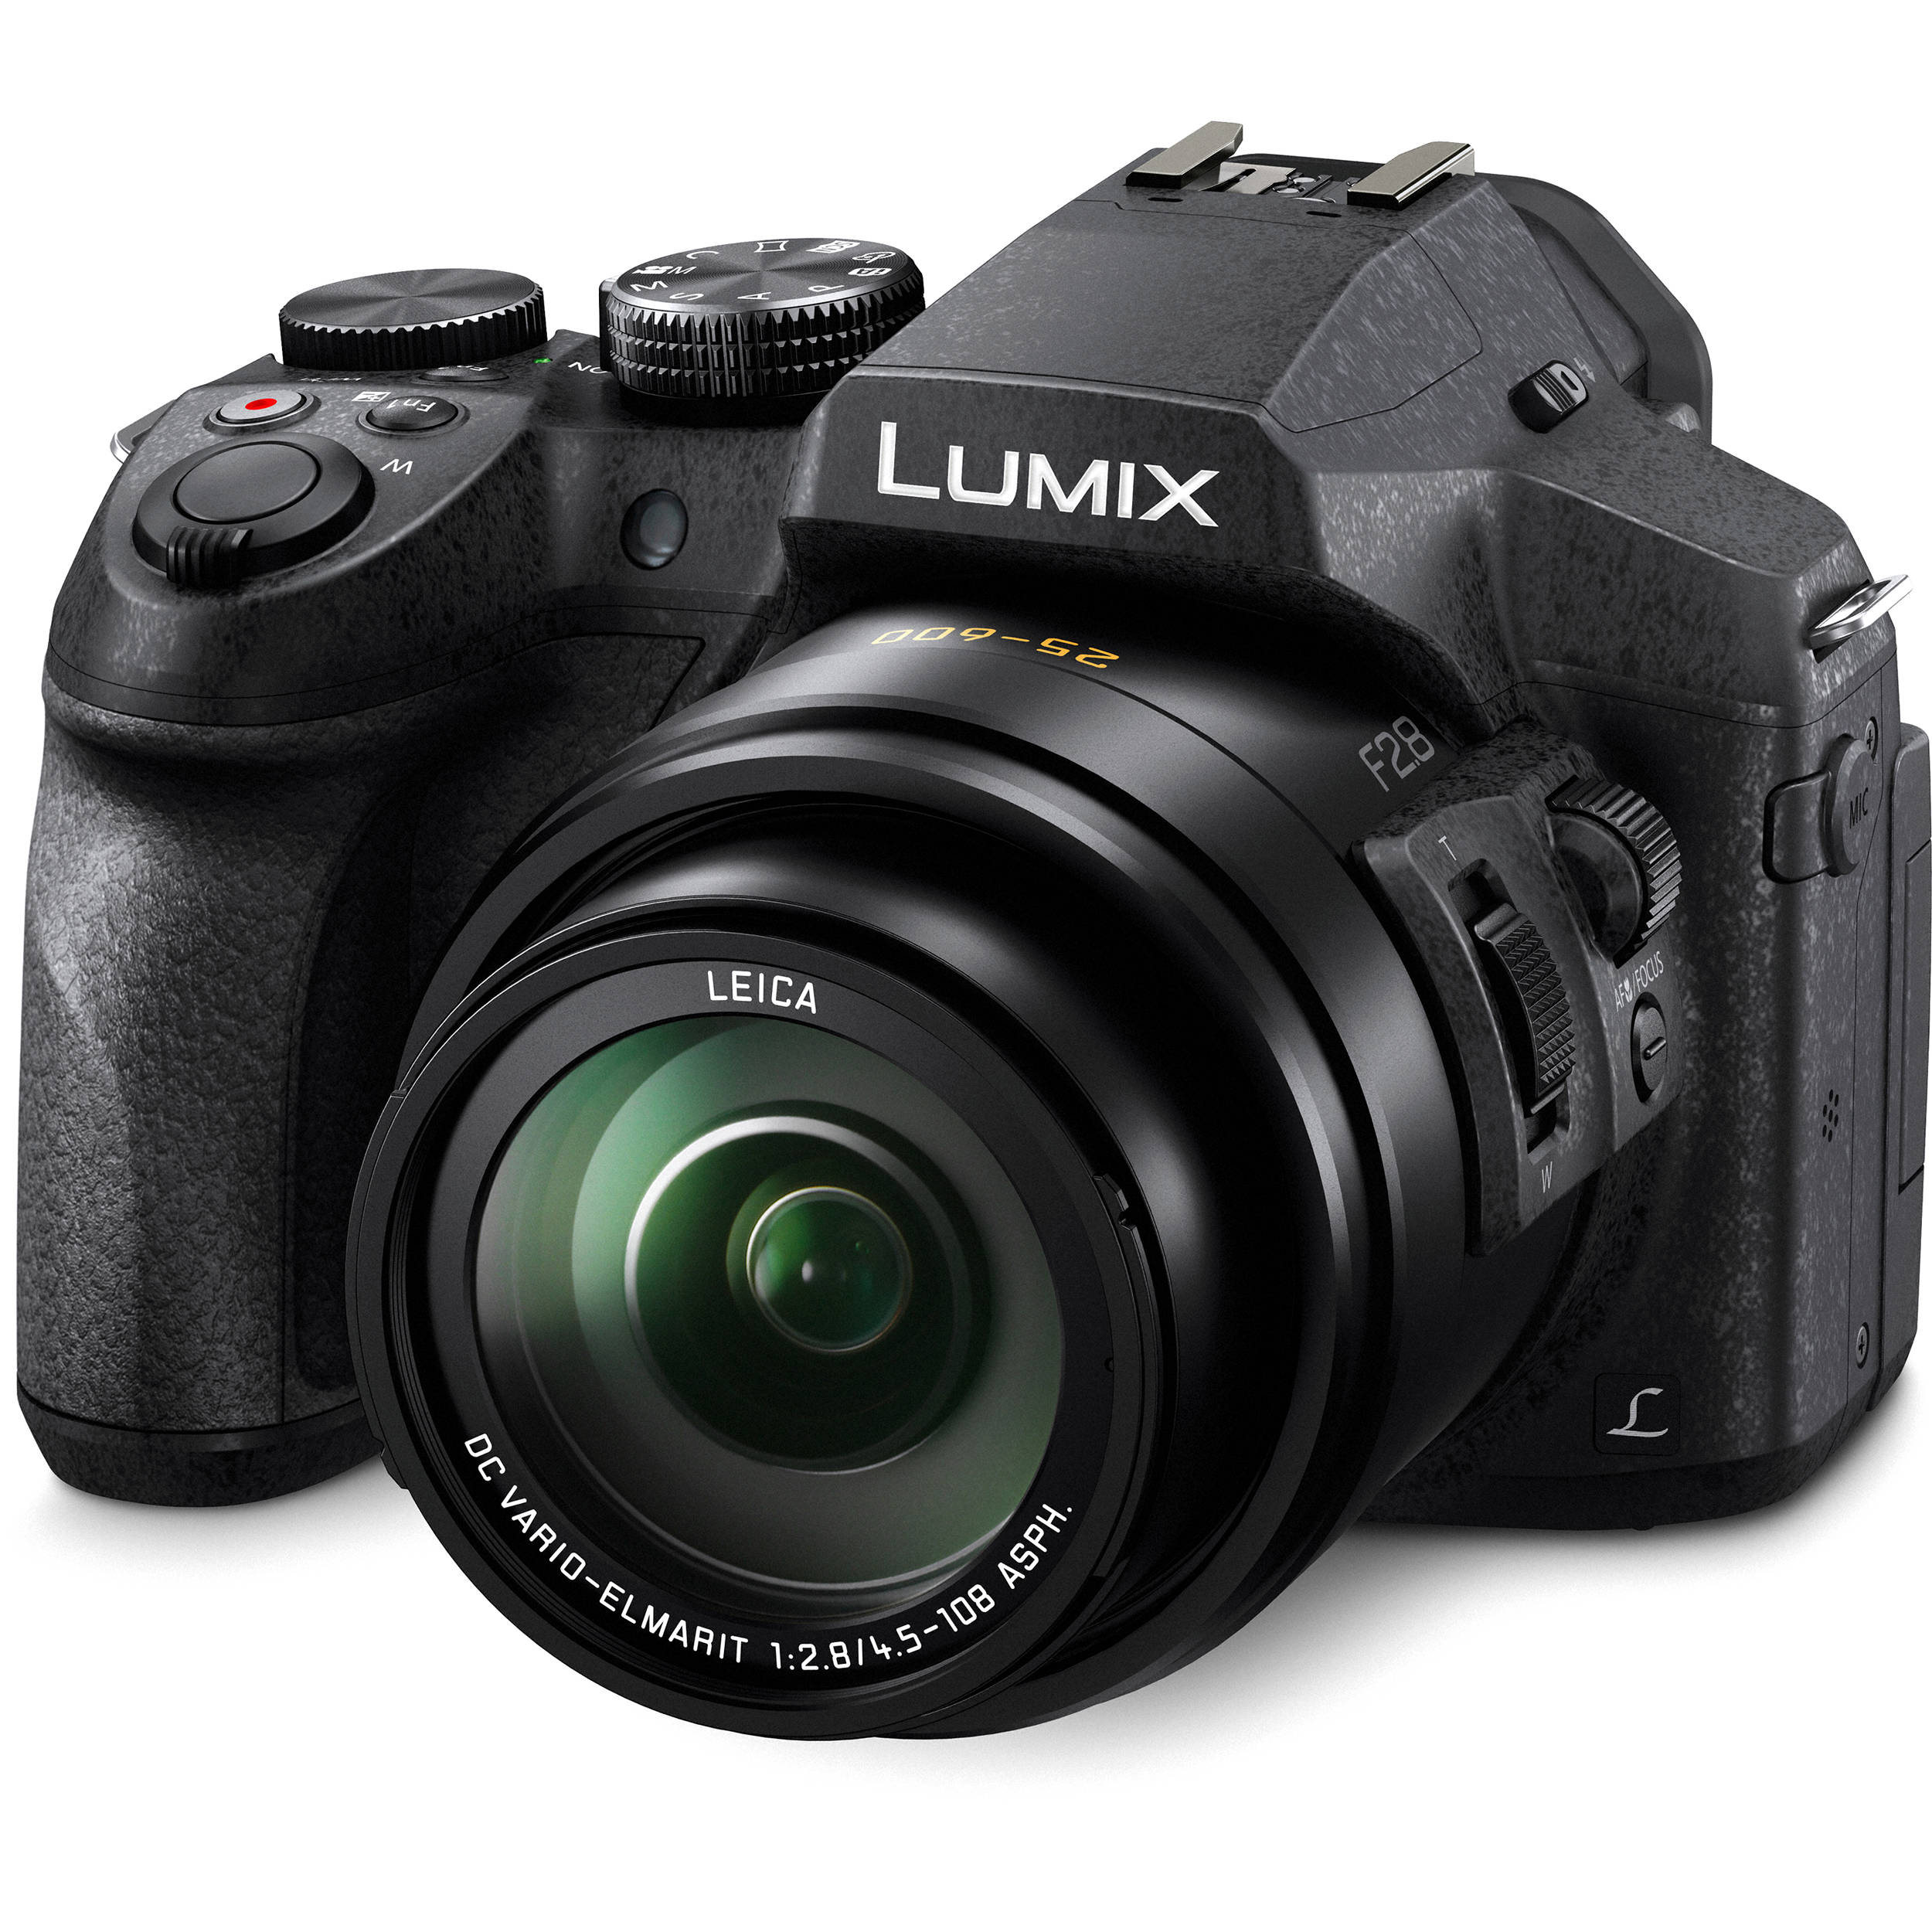 Panasonic Lumix DMC-FZ300 Digital Camera DMC-FZ300 B&H Photo